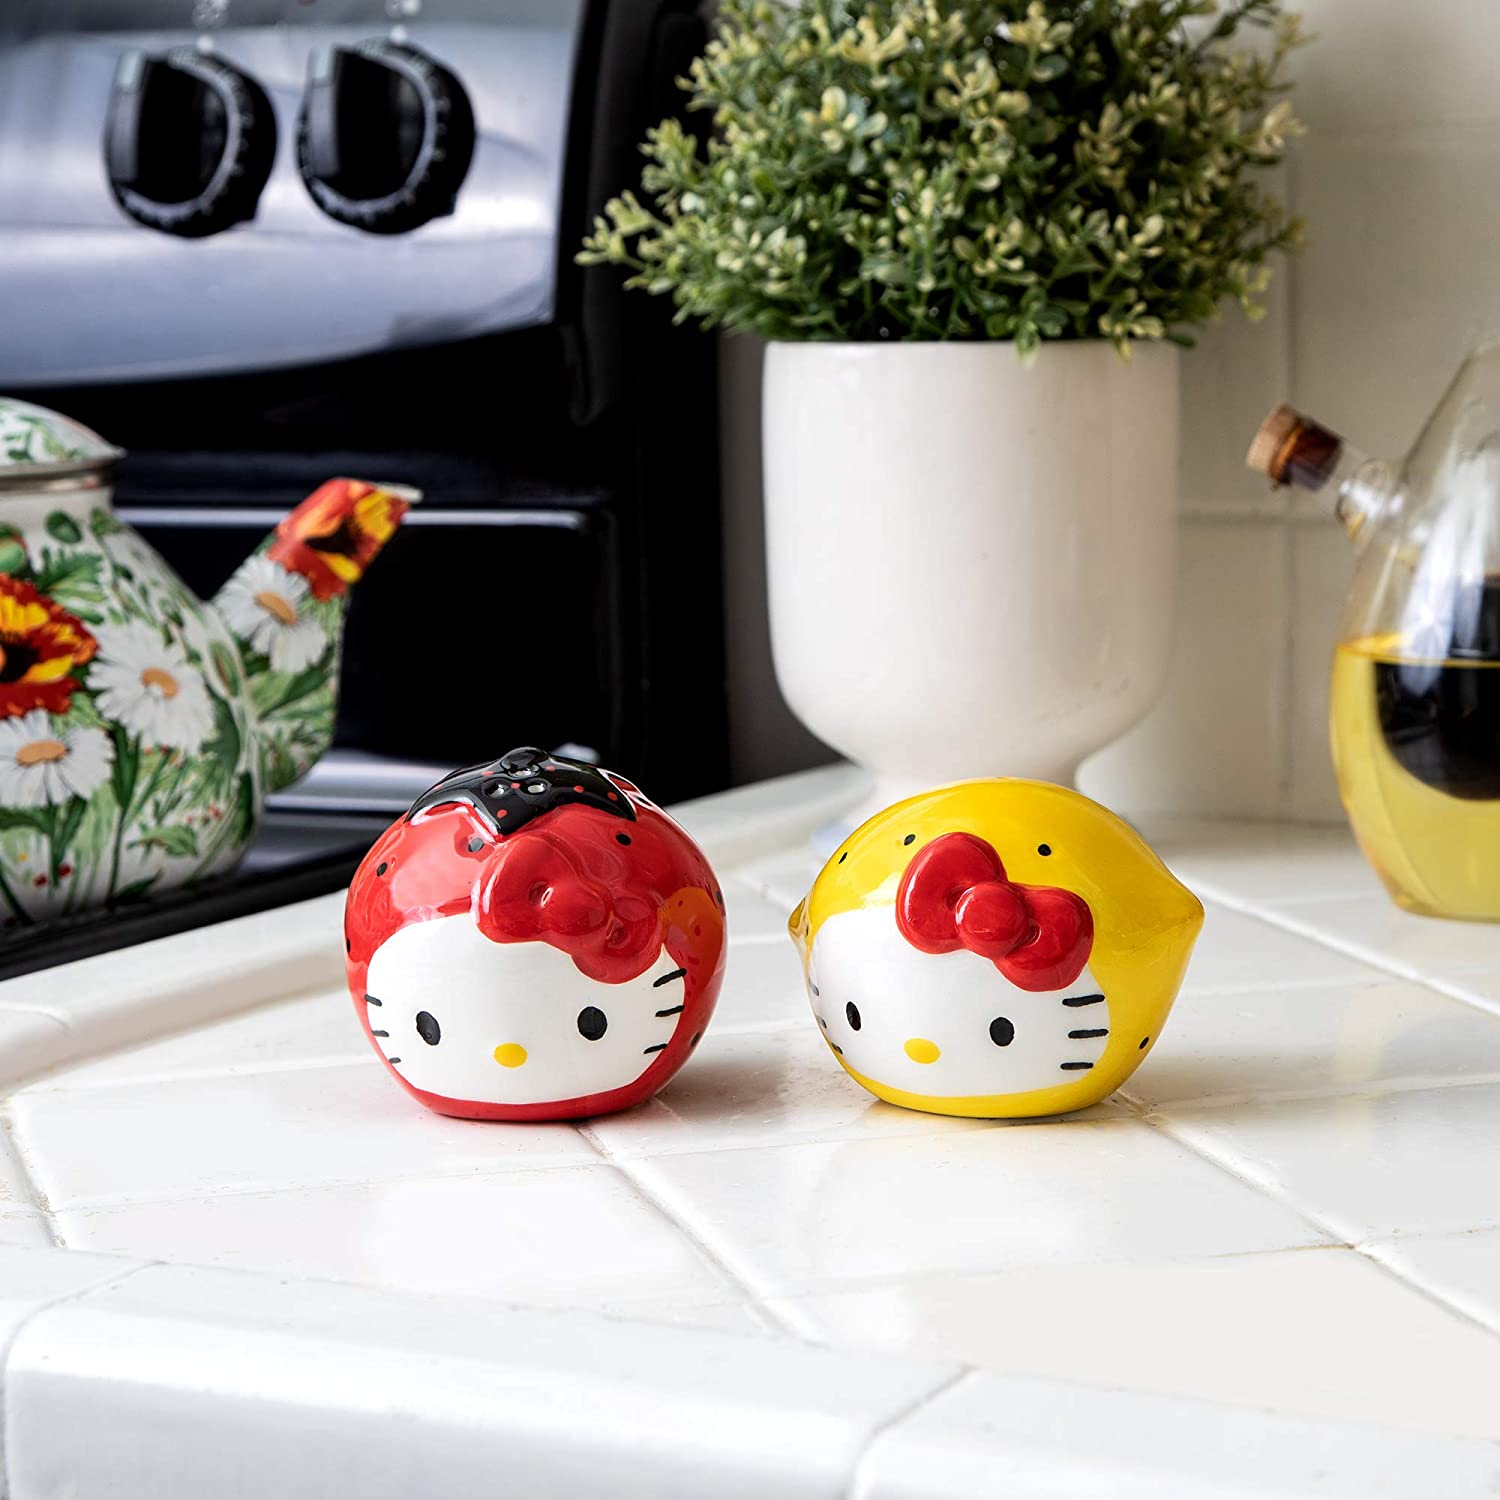 Amazon Com Vandor Hello Kitty I Love Strawberries Lemons Sculpted Ceramic Salt Pepper Set Multicolor Regular Kitchen Dining